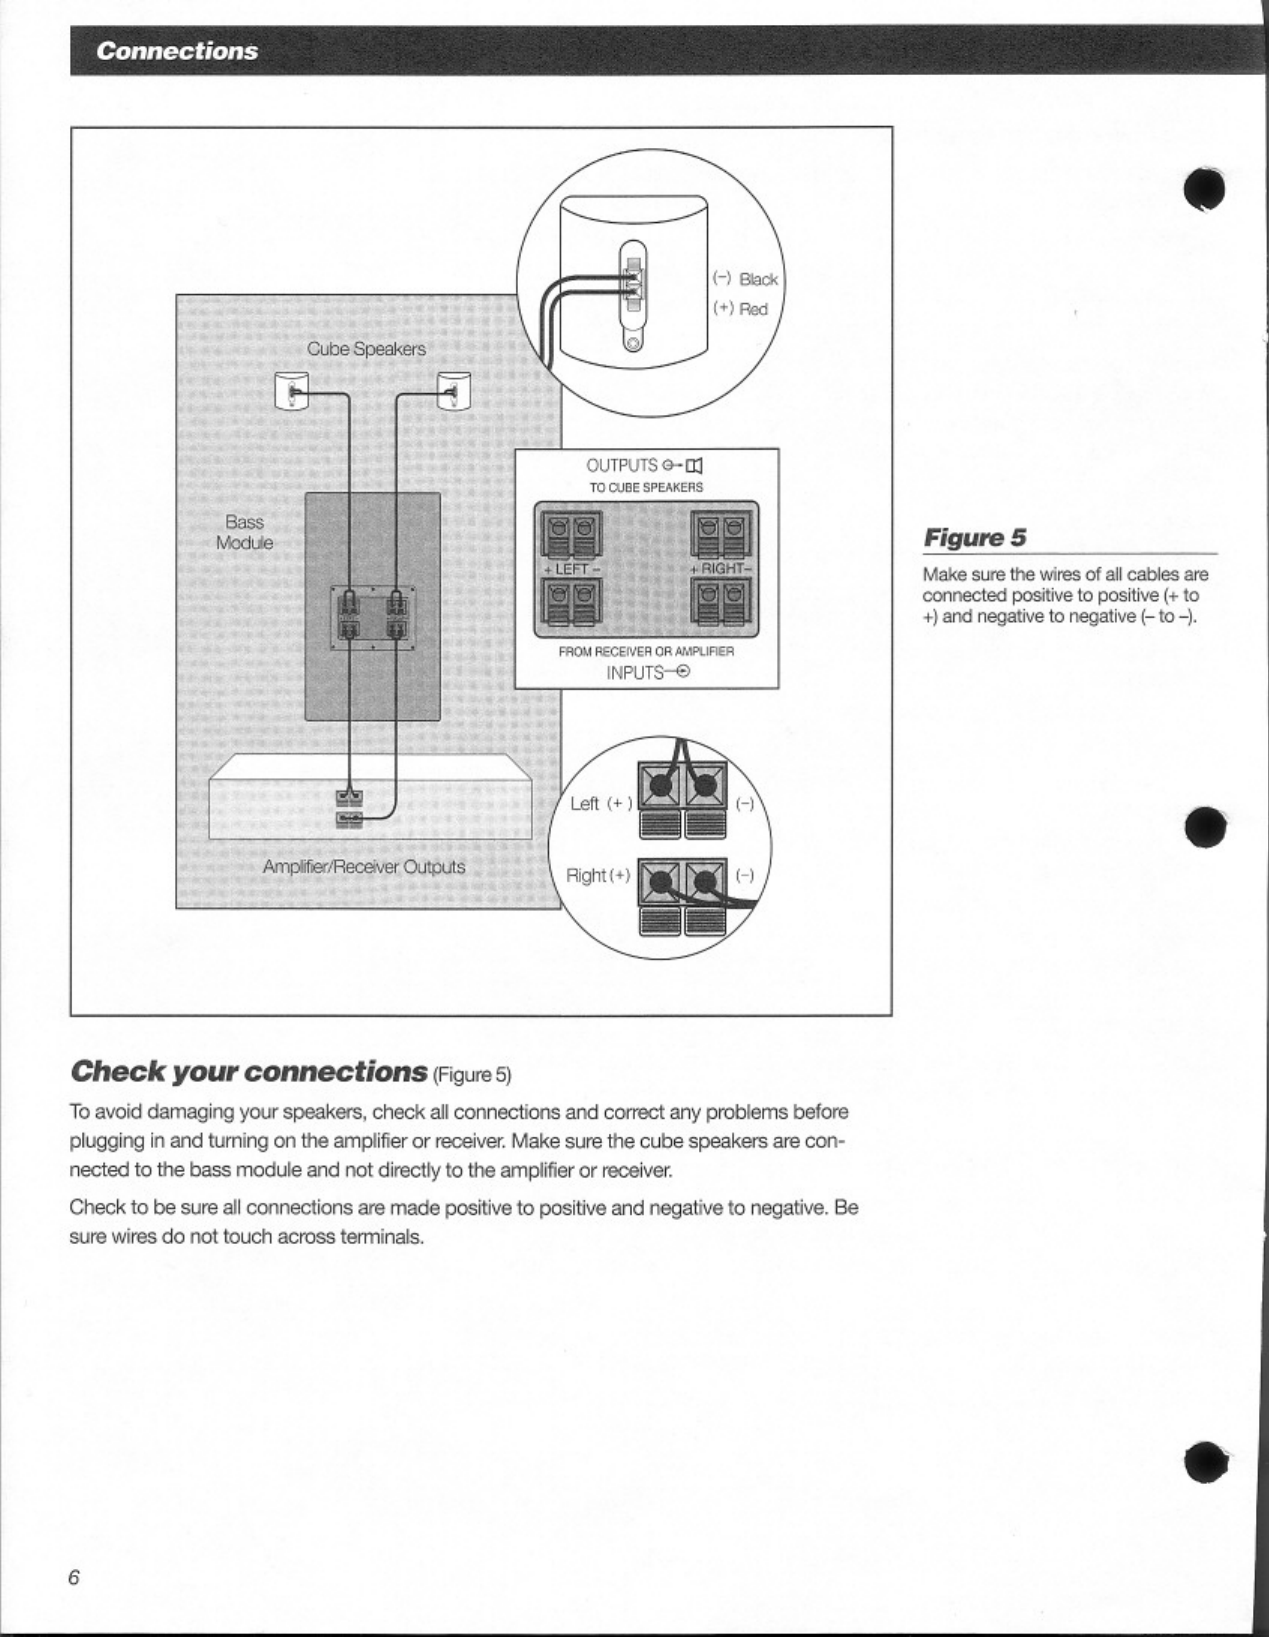 Bose Acoustimass 3 Series Iii Users Manual